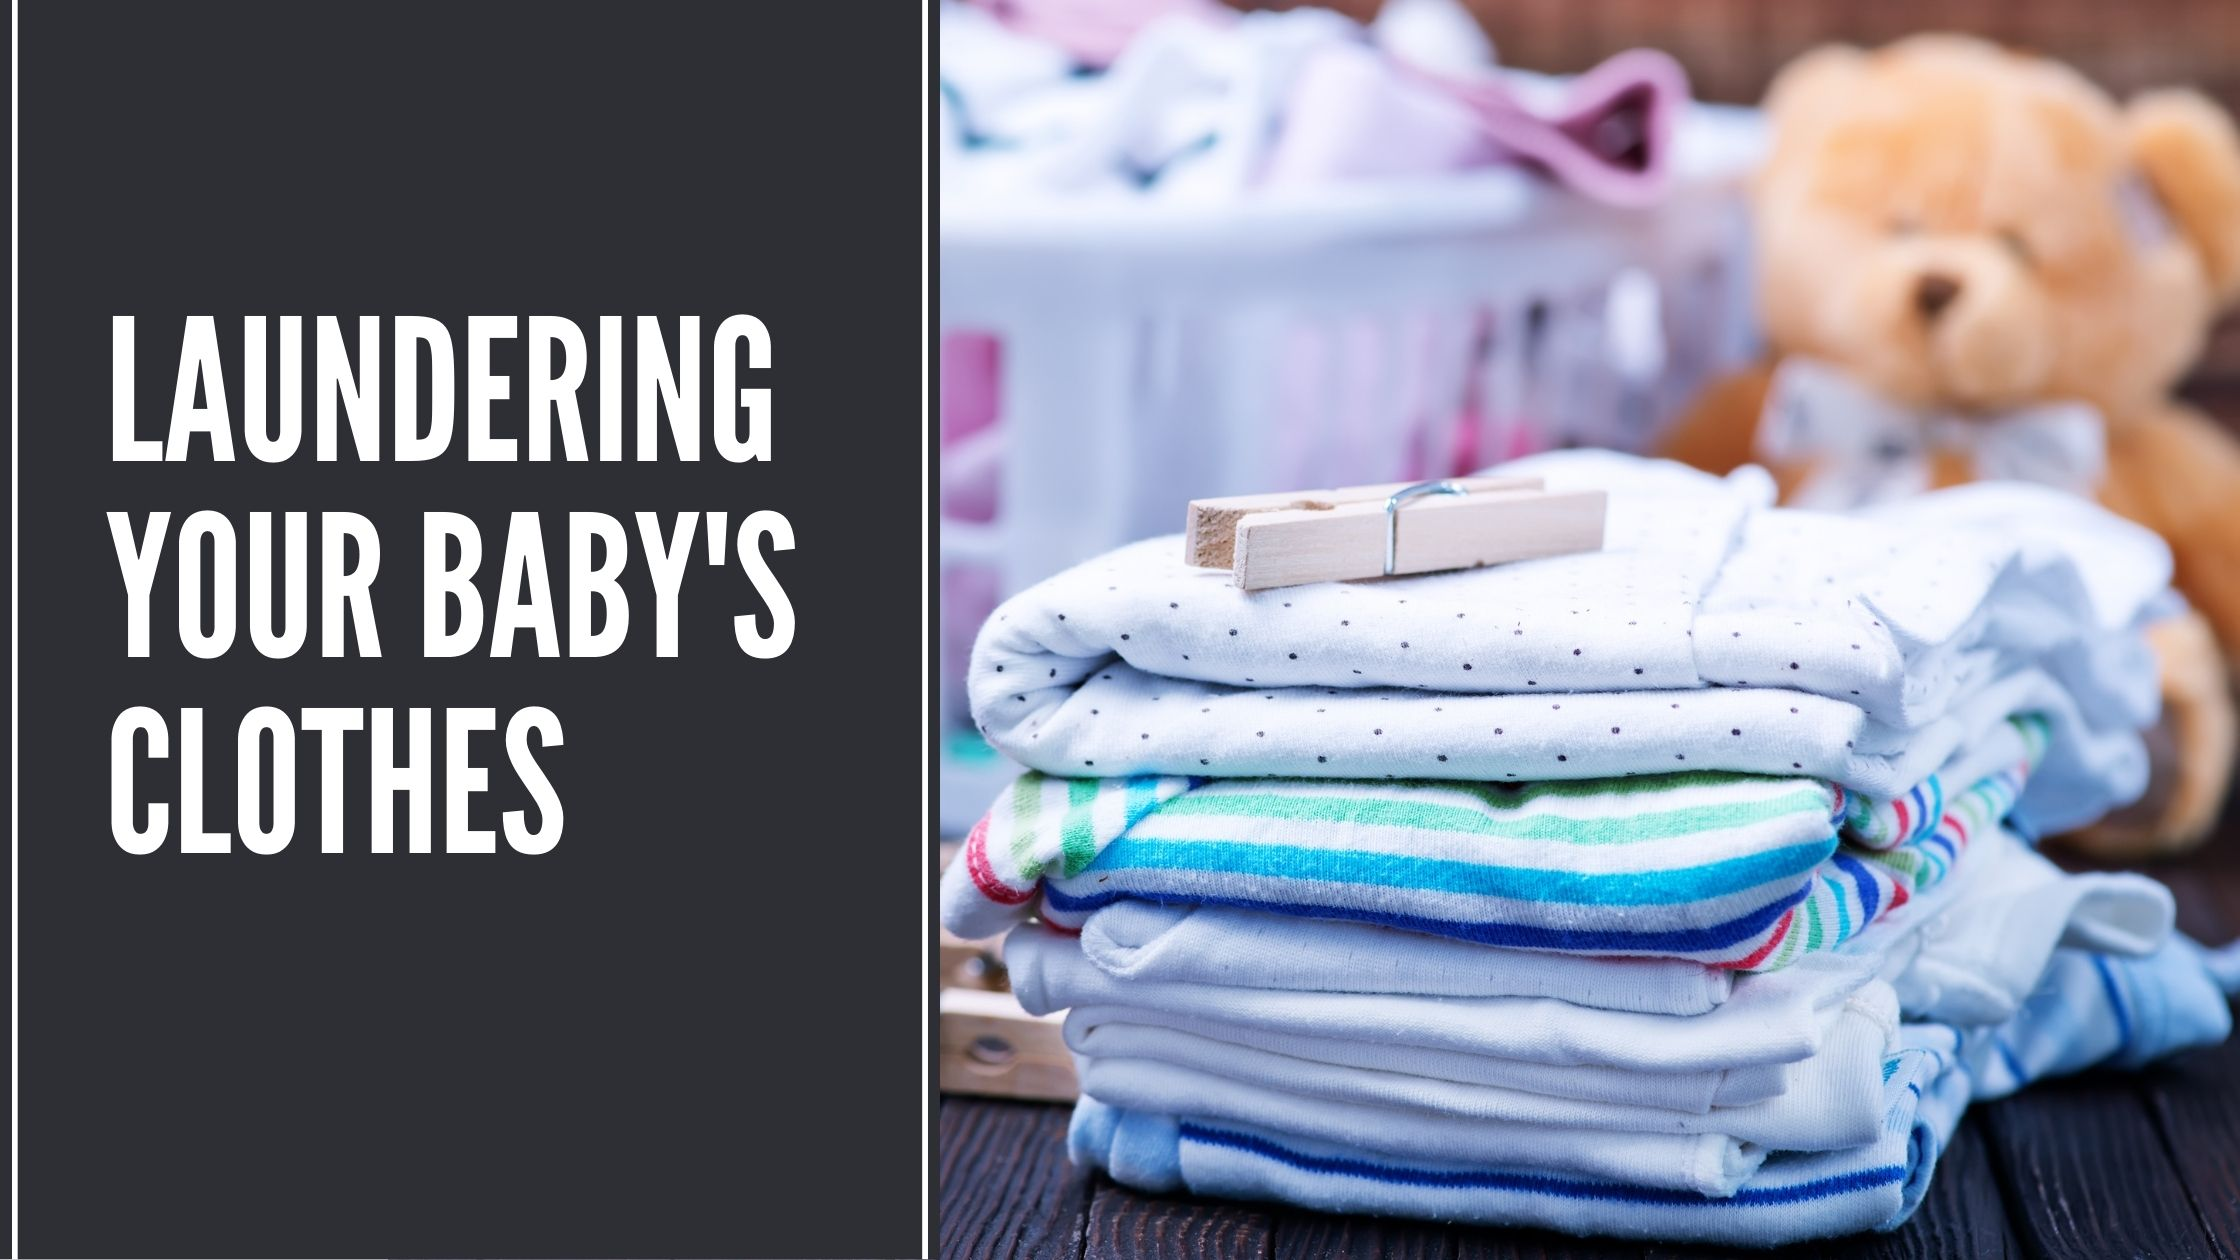 Laundering Your Baby's Clothes